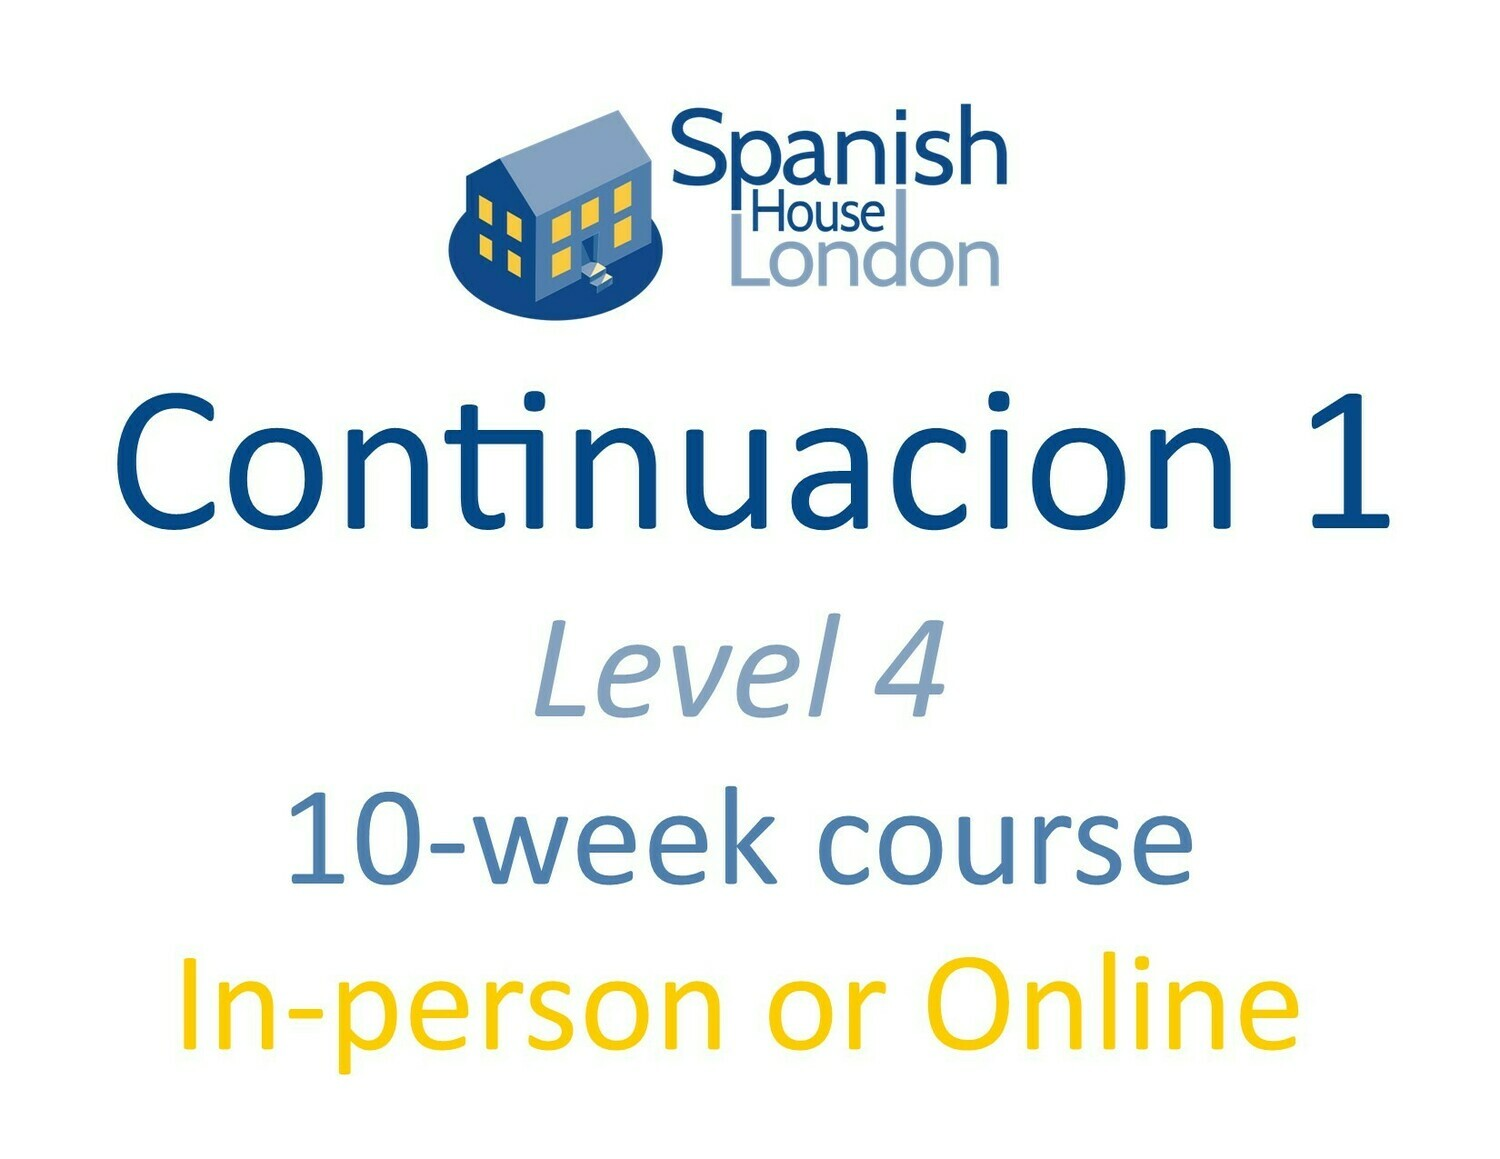 Continuacion 1 Course starting on 26th April at 7.30pm in Clapham North